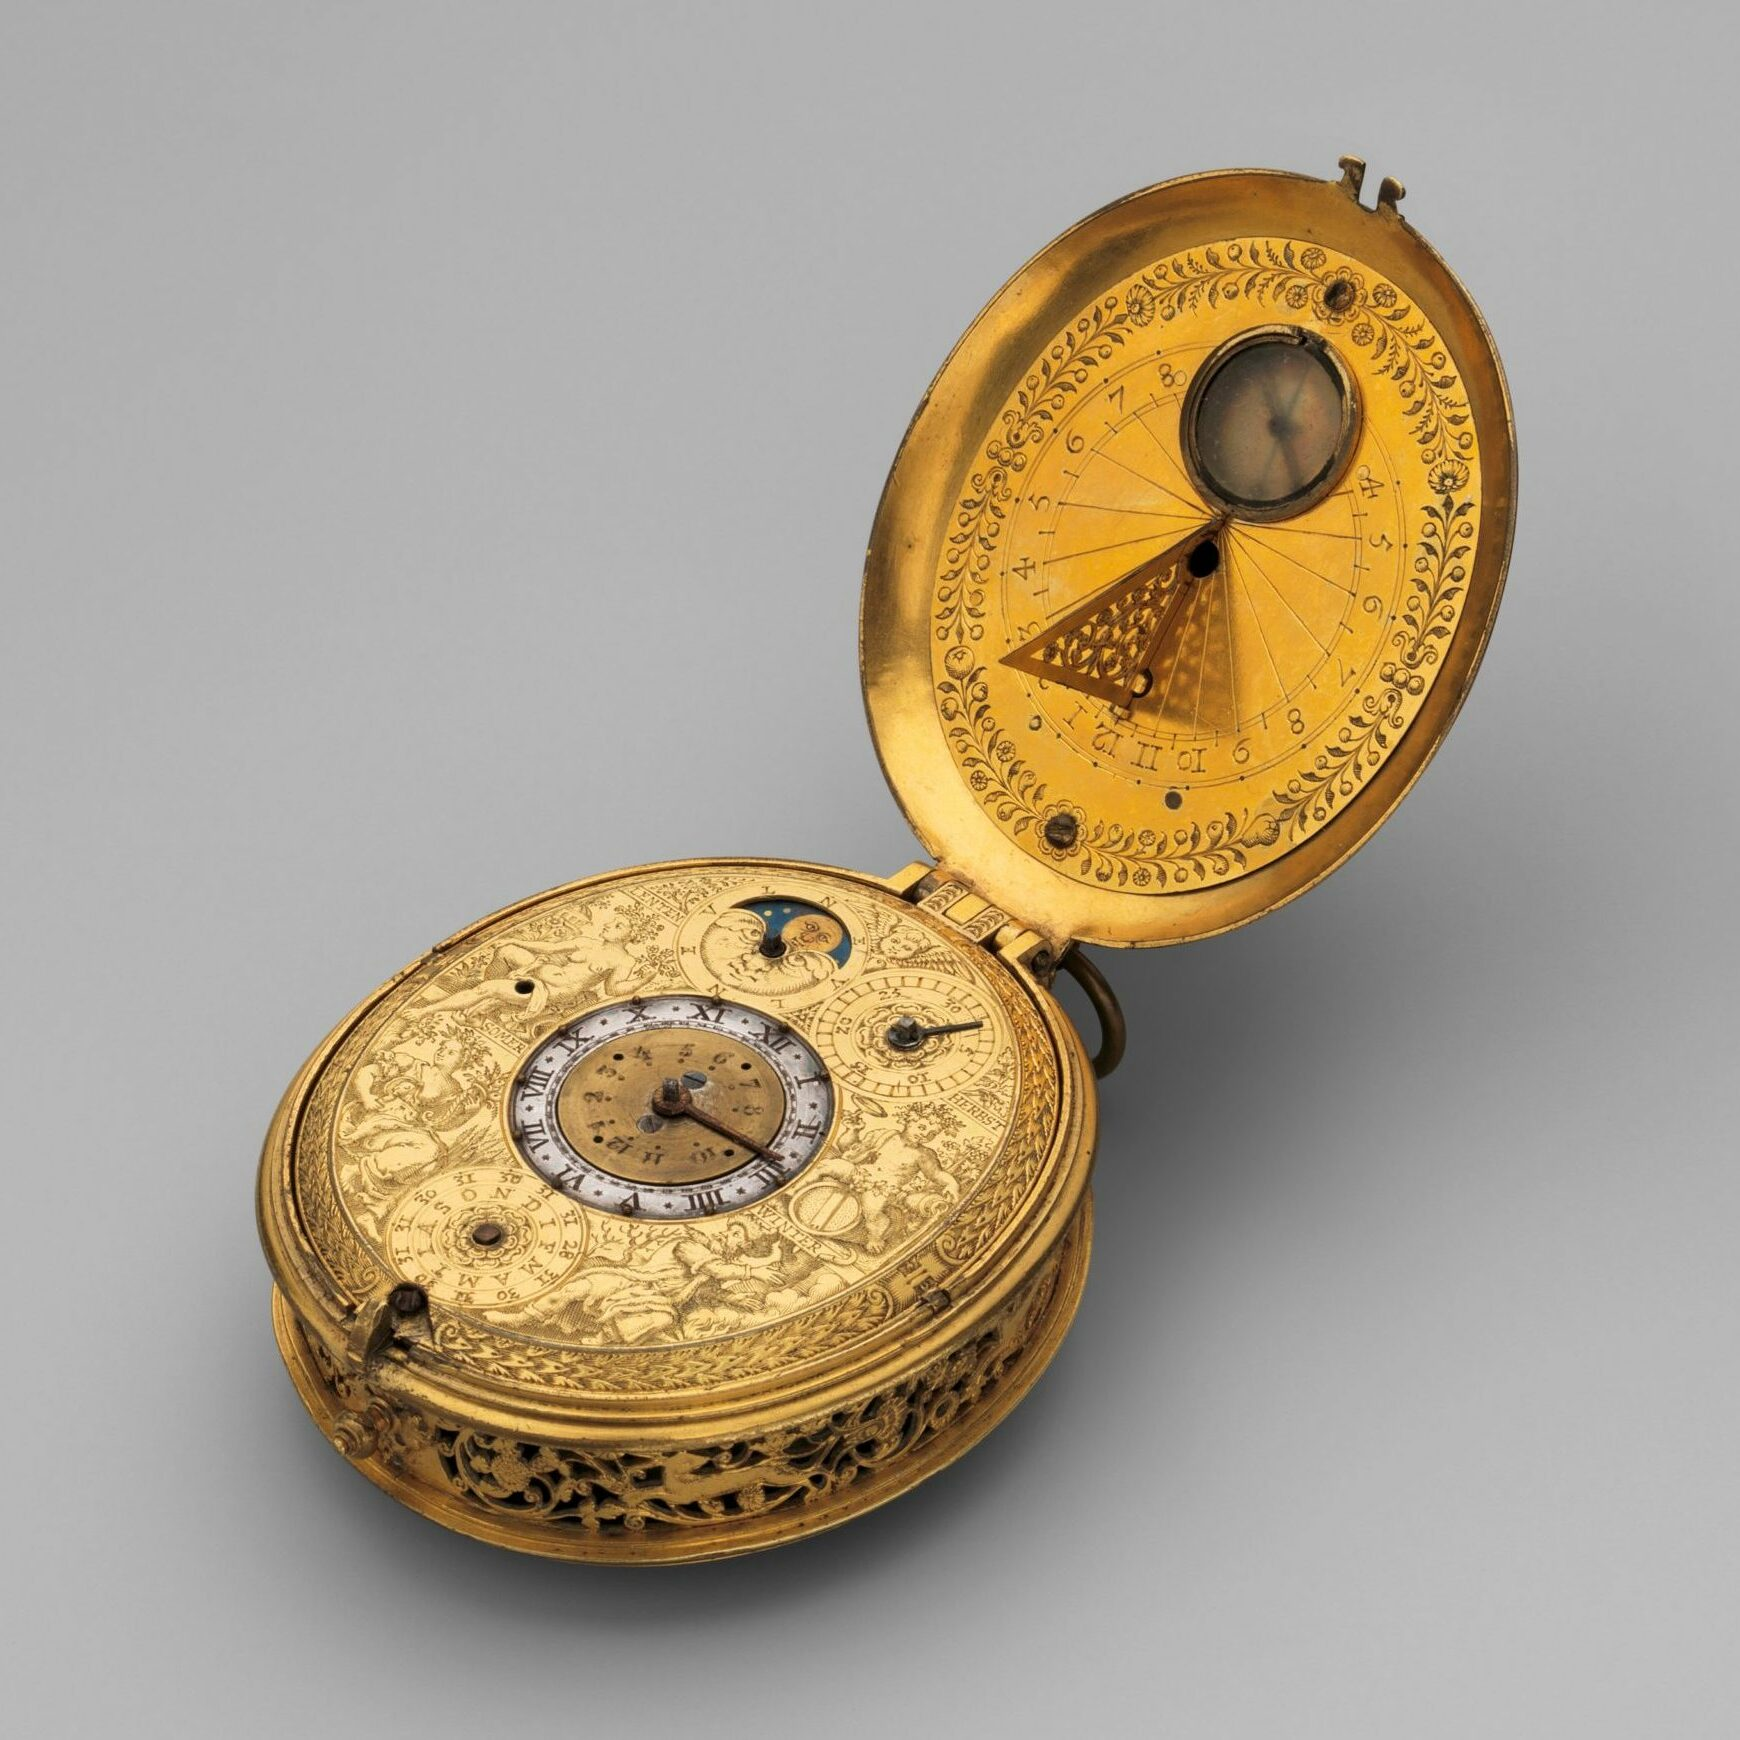 Jan Jansen Bockeltz (died 1626) Clock-watch with sundial, ca. 1605–10 Dutch, Haarlem,  Movement of gilt brass and steel, partly blued; case of gilt brass; H. 2-5/8 x W. 2-1/8 in.  (6.7 x 5.4 cm) The Metropolitan Museum of Art, New York, Gift of J. Pierpont Morgan, 1917 (17.190.1603) http://www.metmuseum.org/Collections/search-the-collections/194191